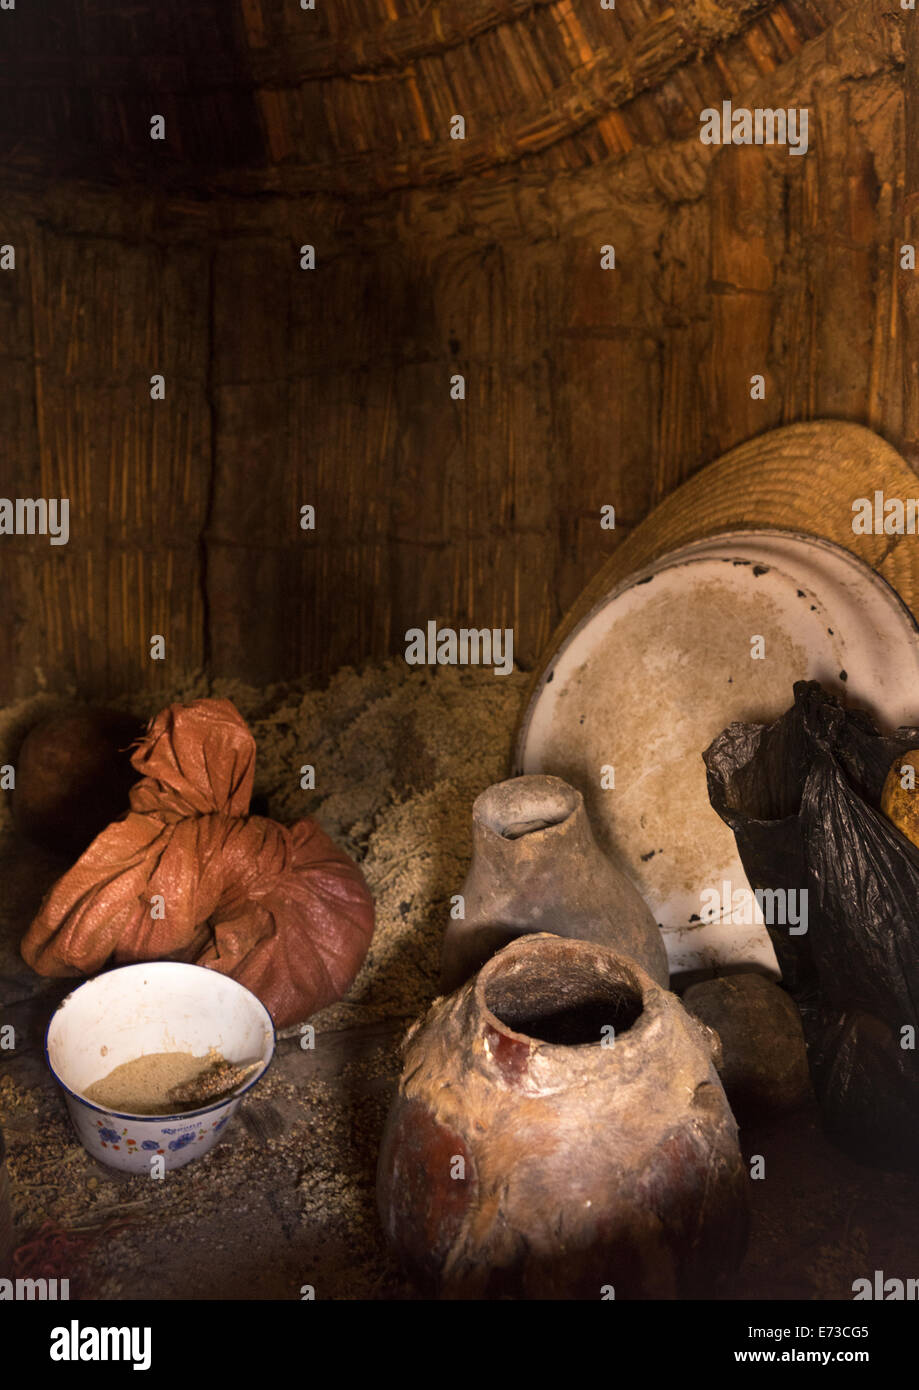 Iside A Konso Tribe Granary, Konso, Ethiopia - Stock Image